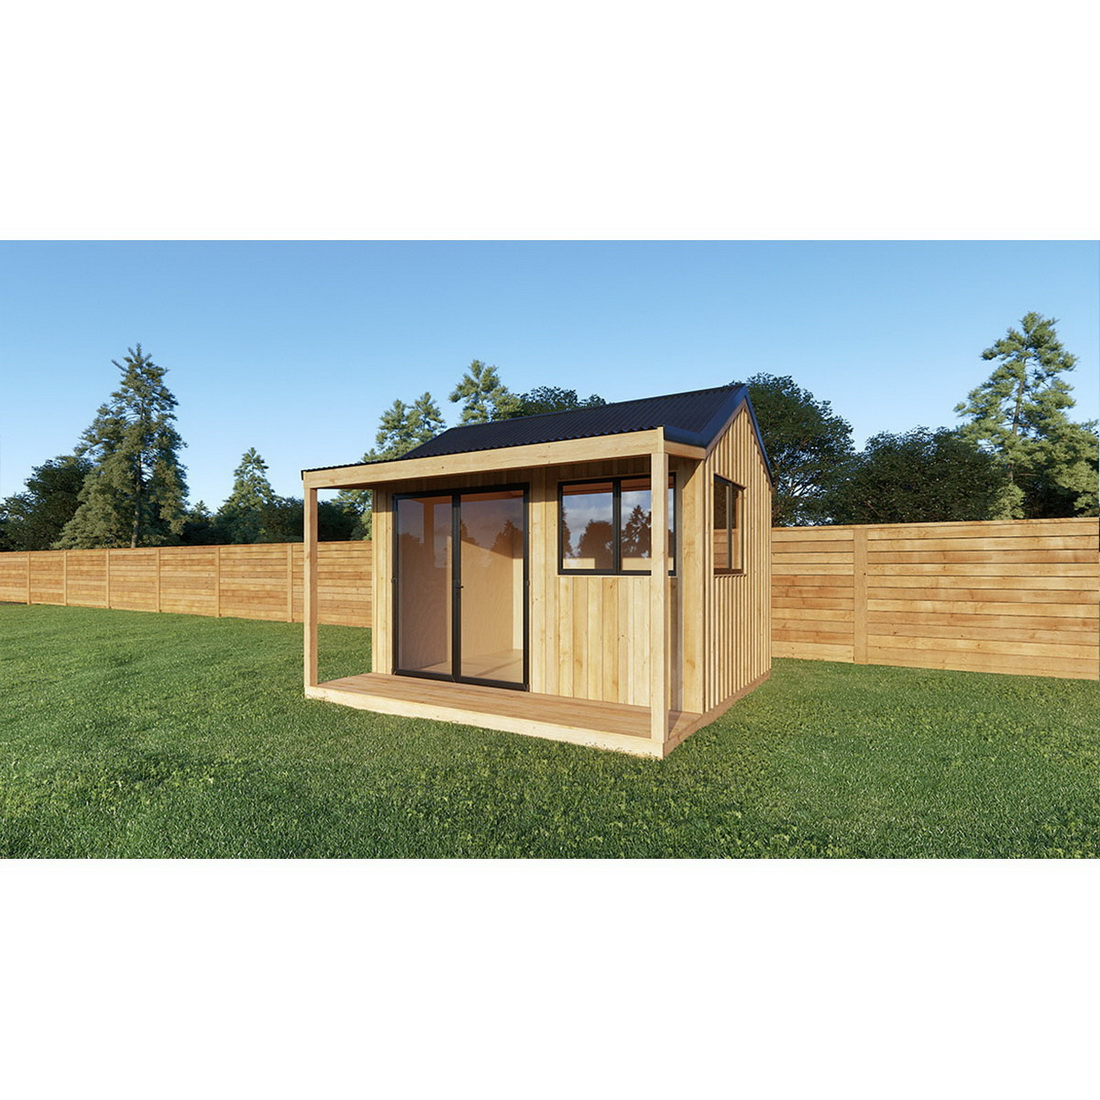 Deluxe Cabana with Floor and Bearers Corrugate Roof 10M2